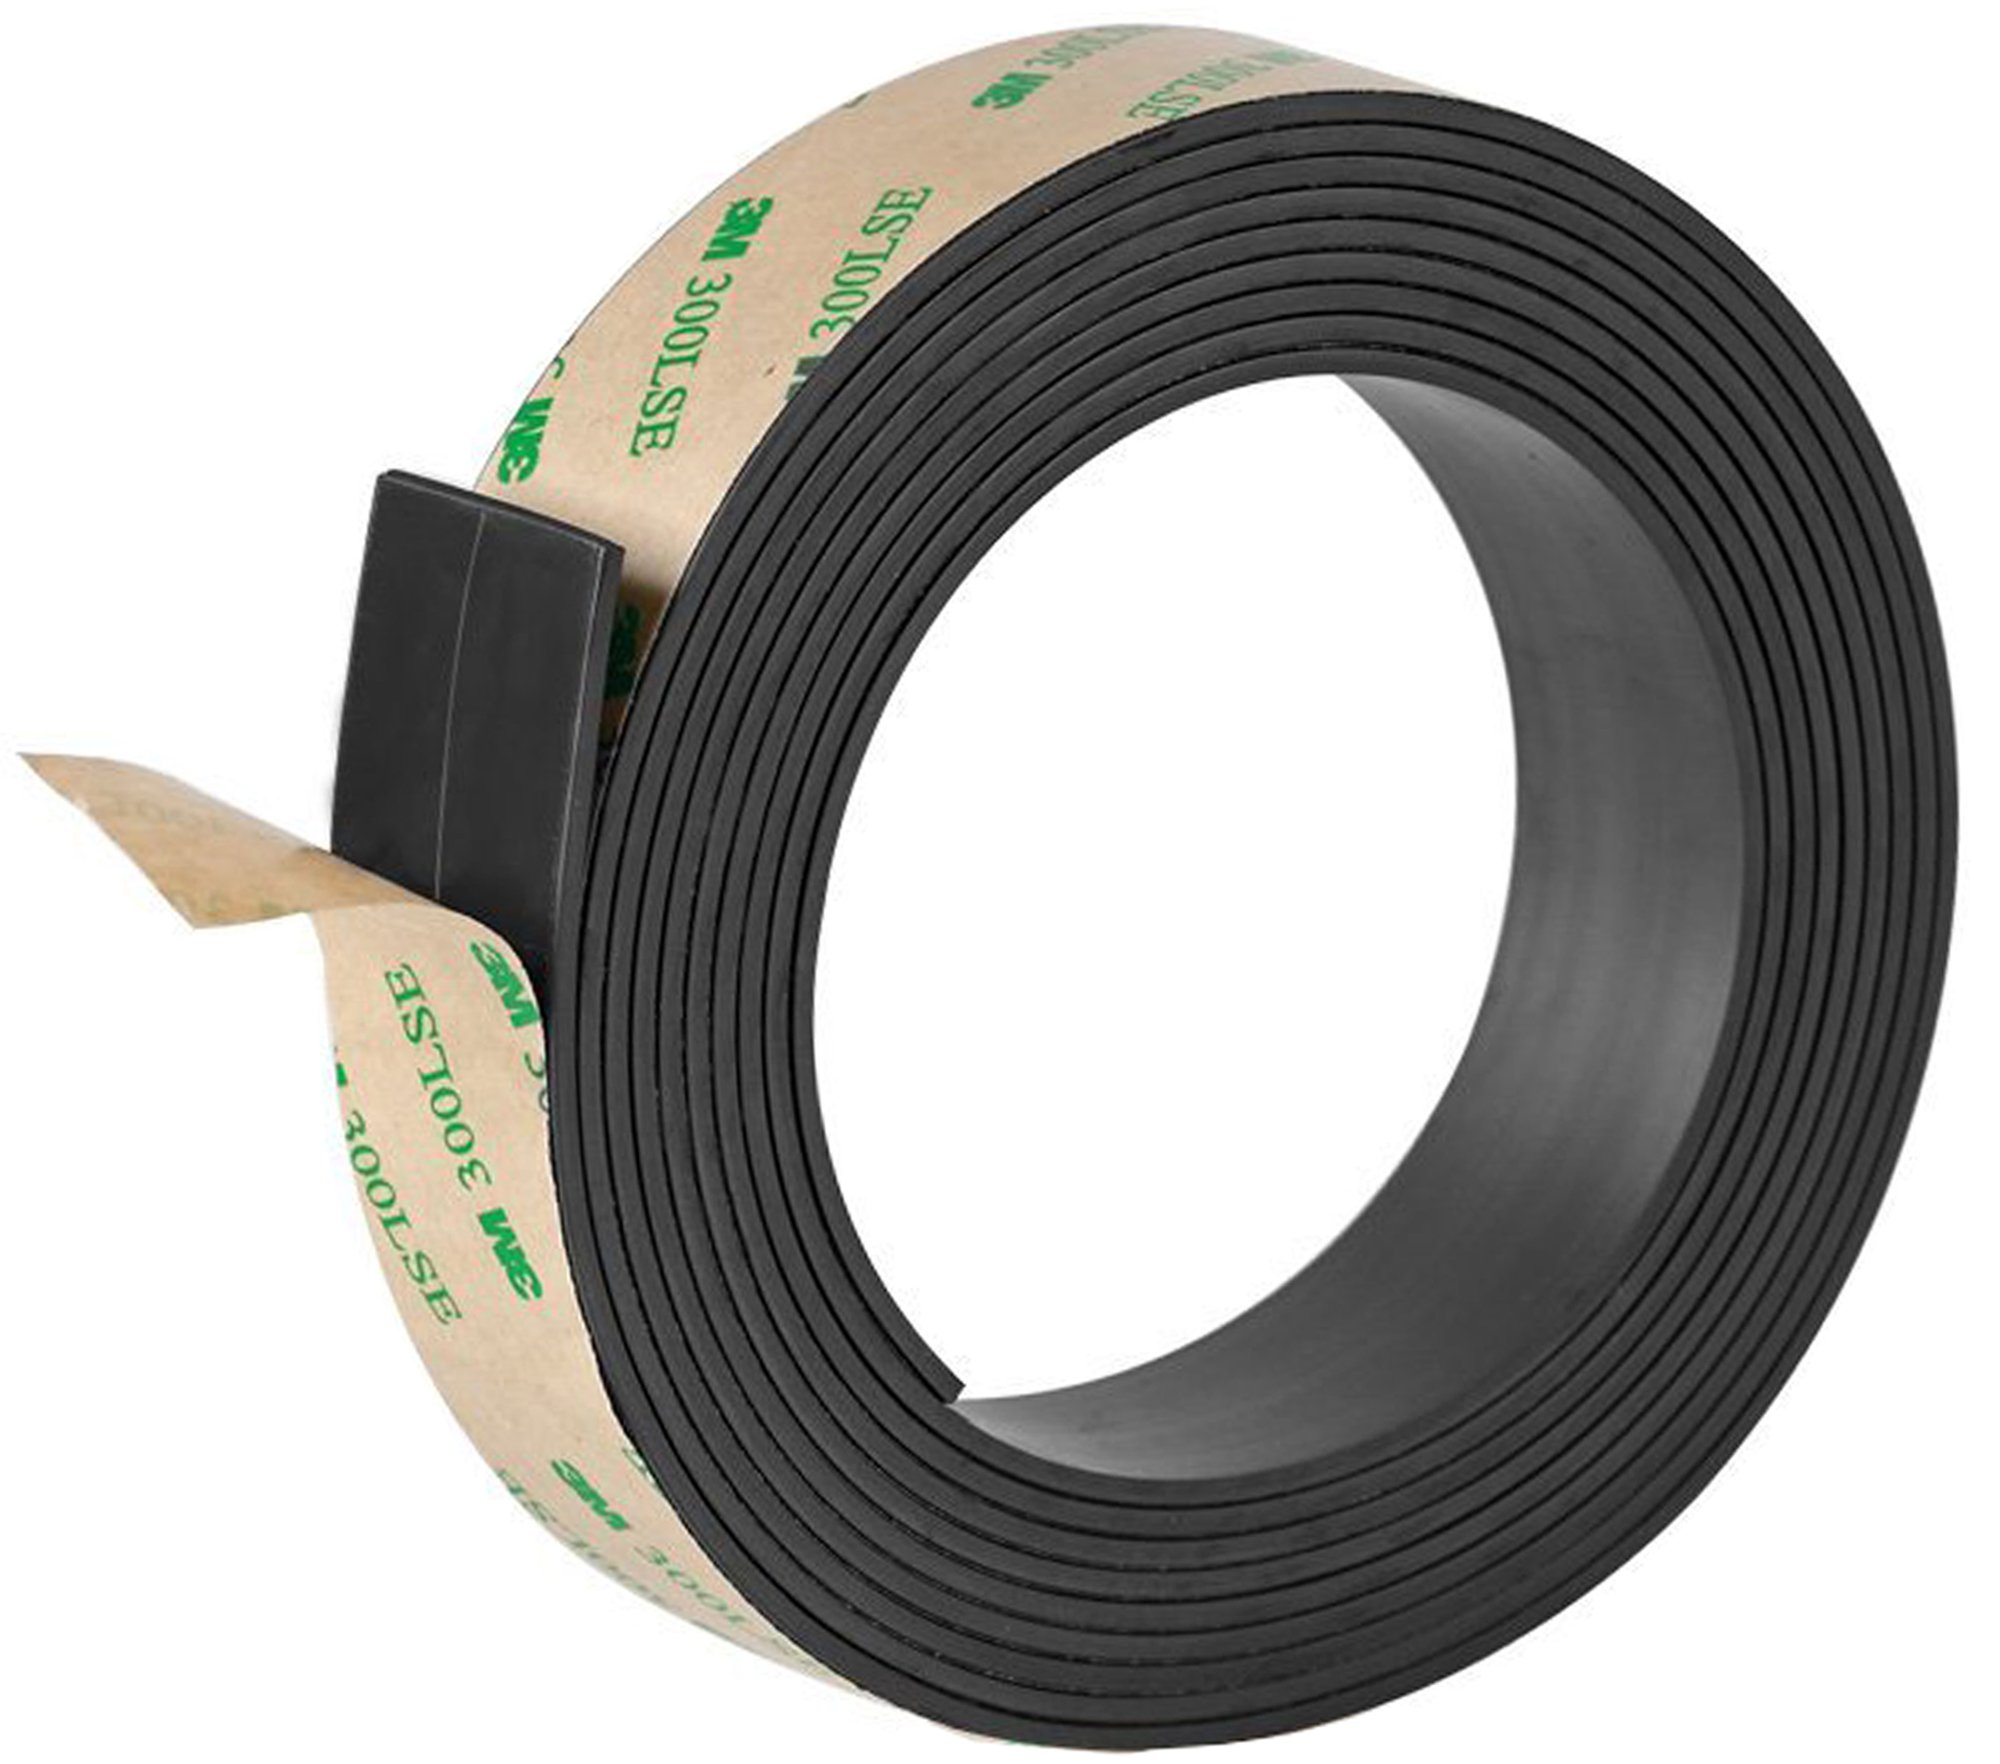 Ilyever 1 inch x 10 Feet Strong Magnetic Tape Anisotropic Magnet Strip with Premium Sticky Adhesive, 2mm Thickness Magnetic Roll Pefect for Fridge Craft & DIY Projects